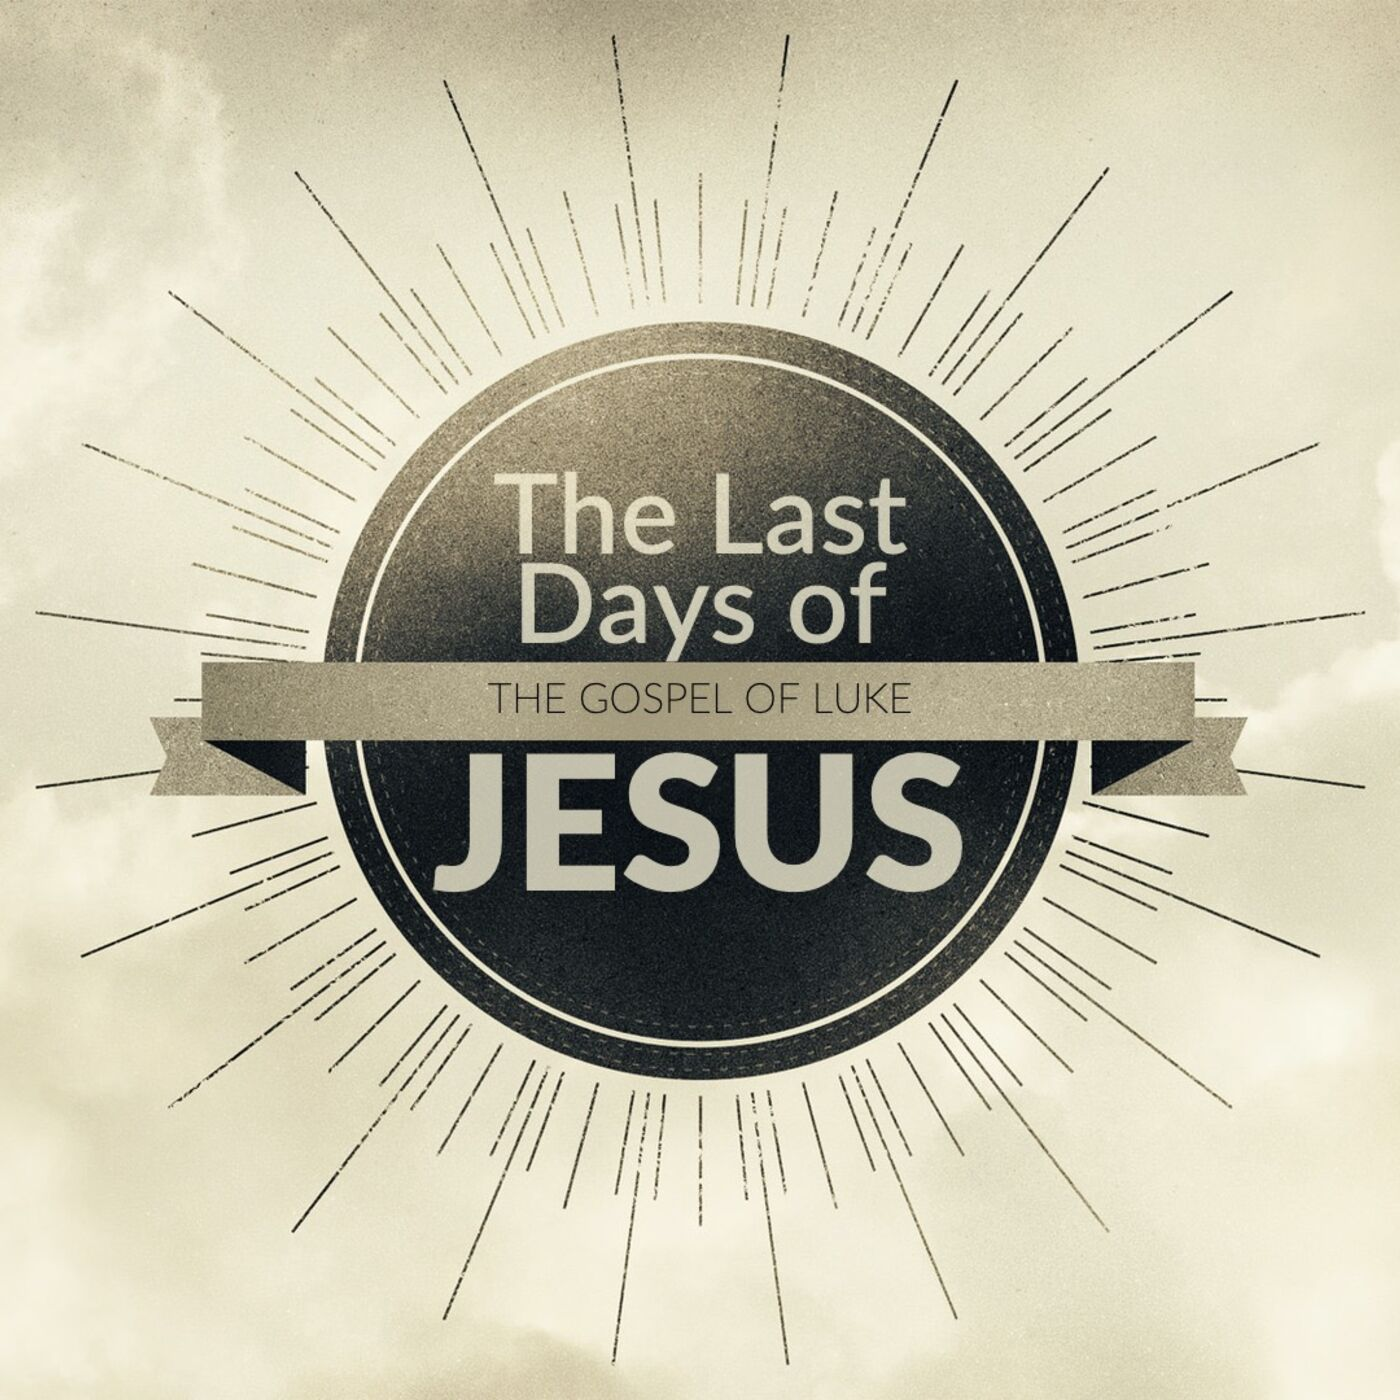 The Last Days of Jesus: Use It or Lose It (Luke 19:11-27)